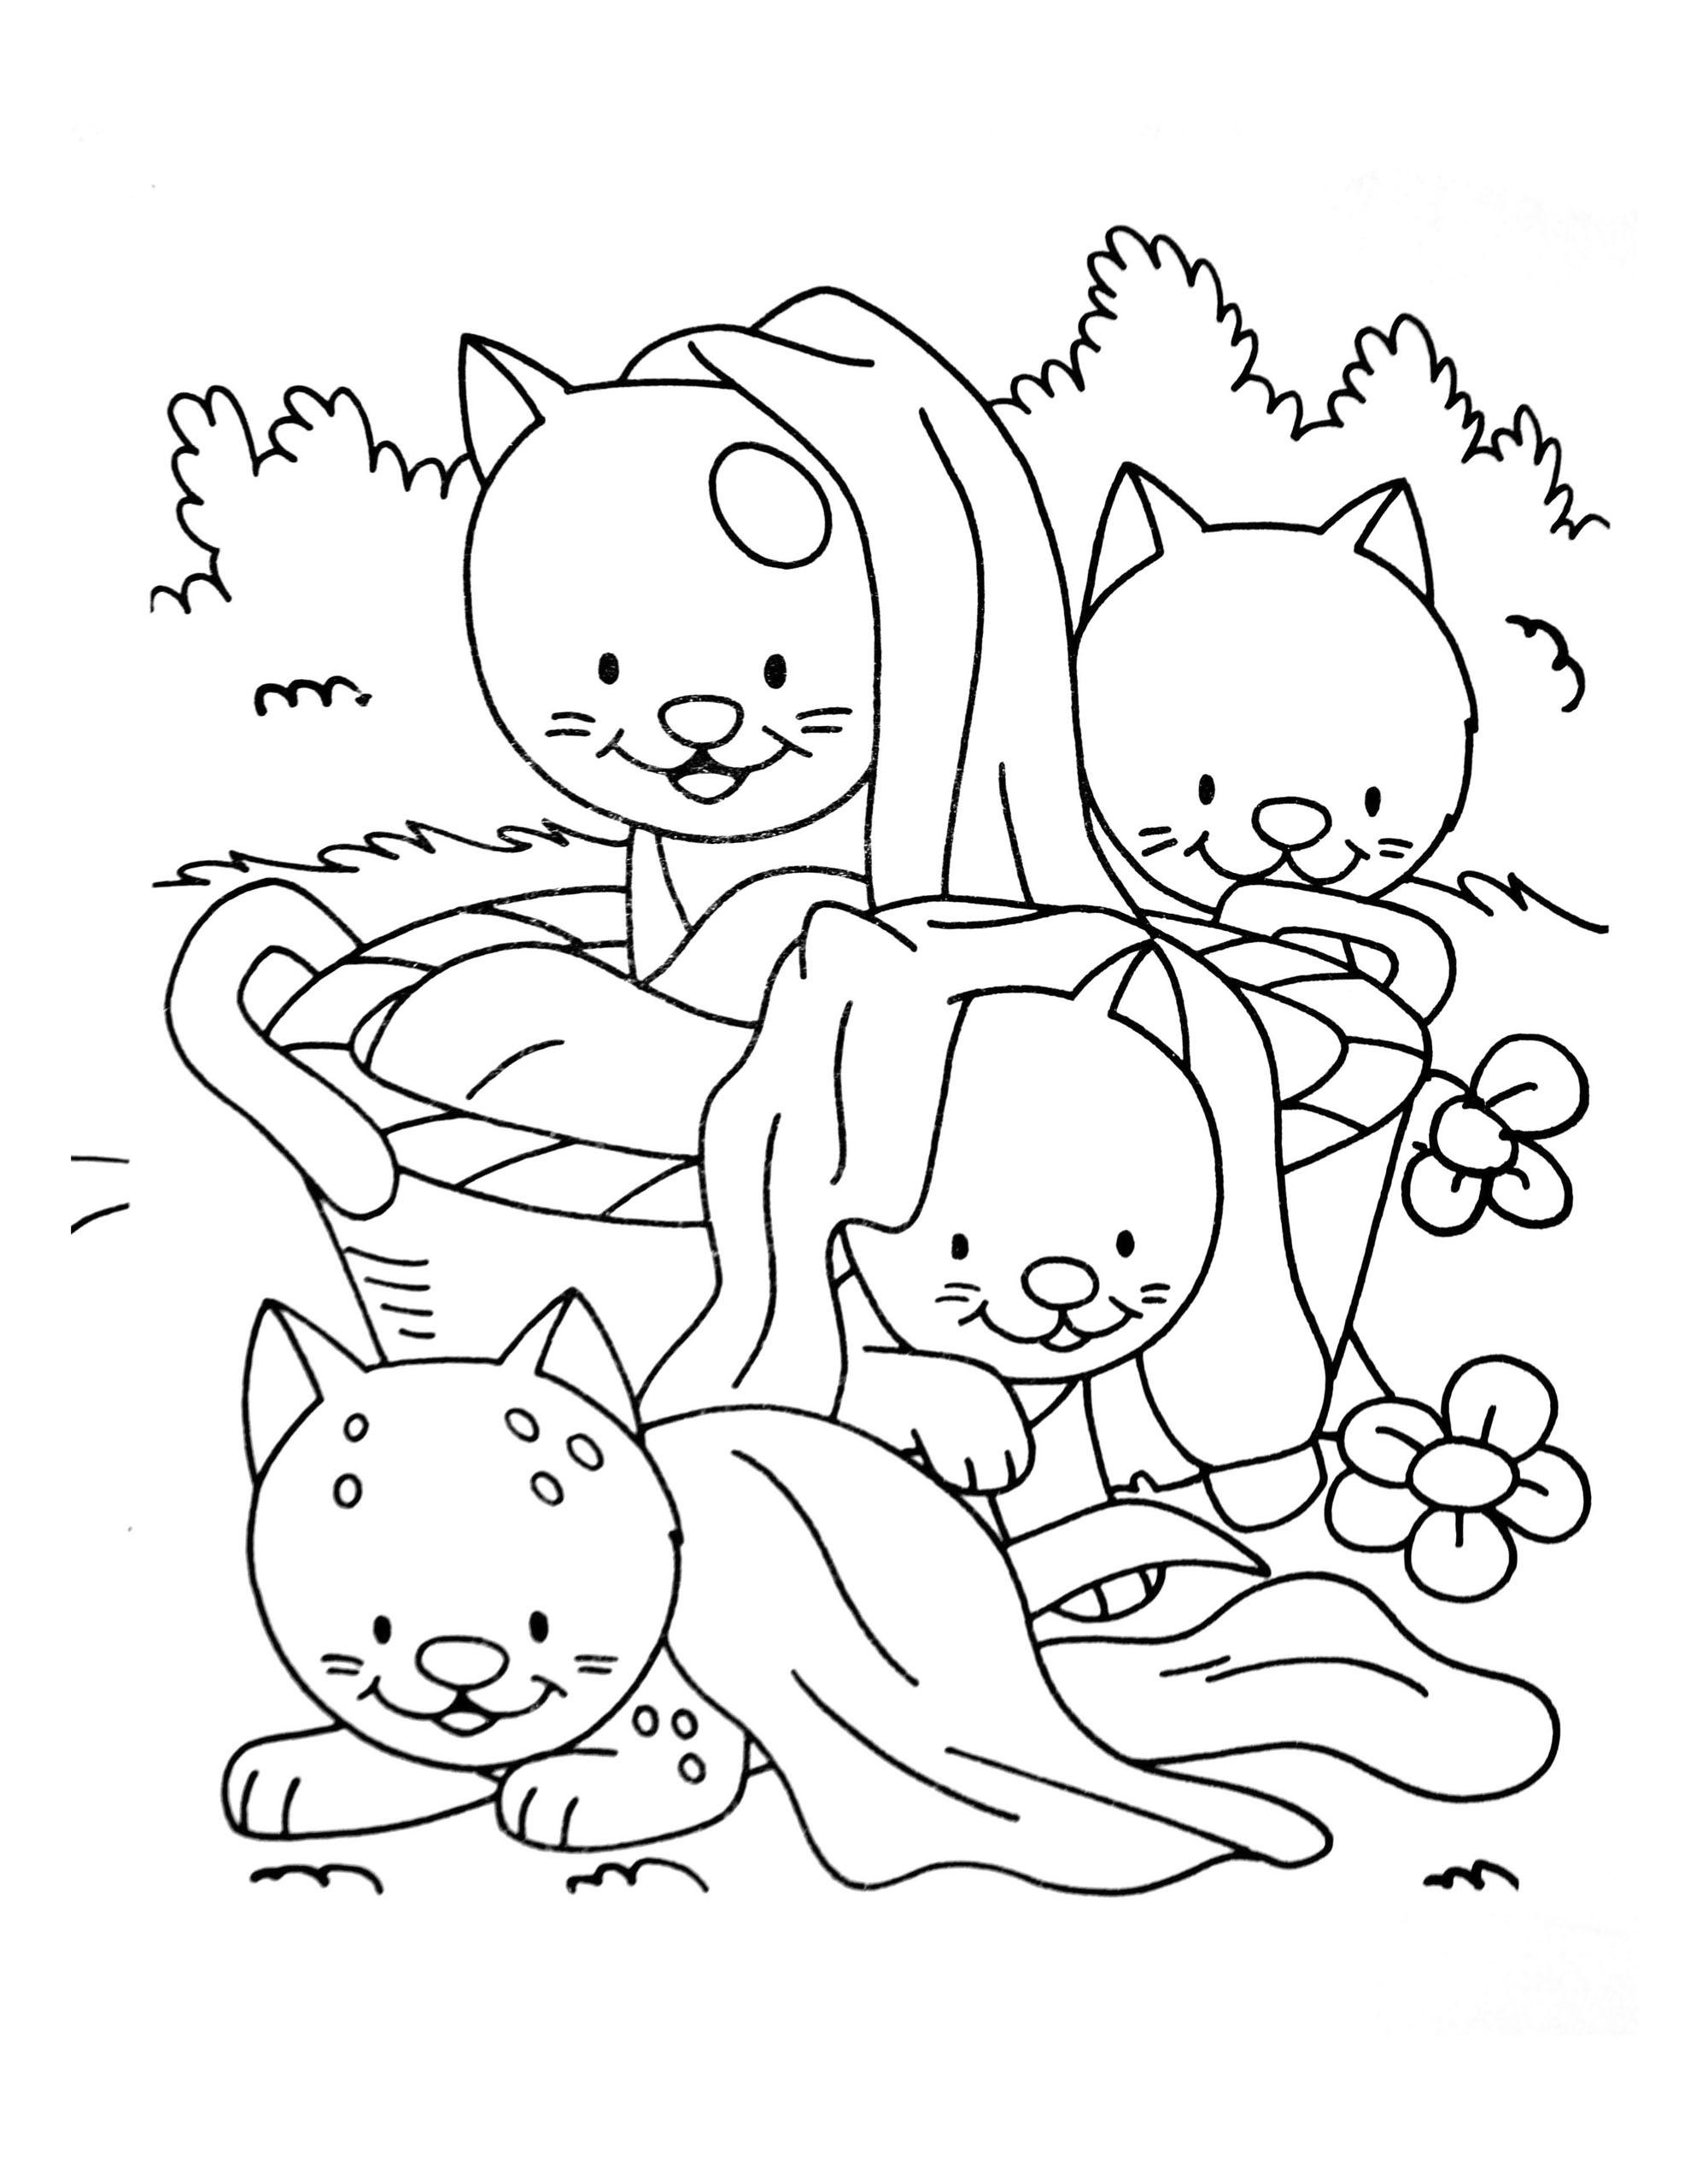 Simple Cat coloring page for kids : Four cats